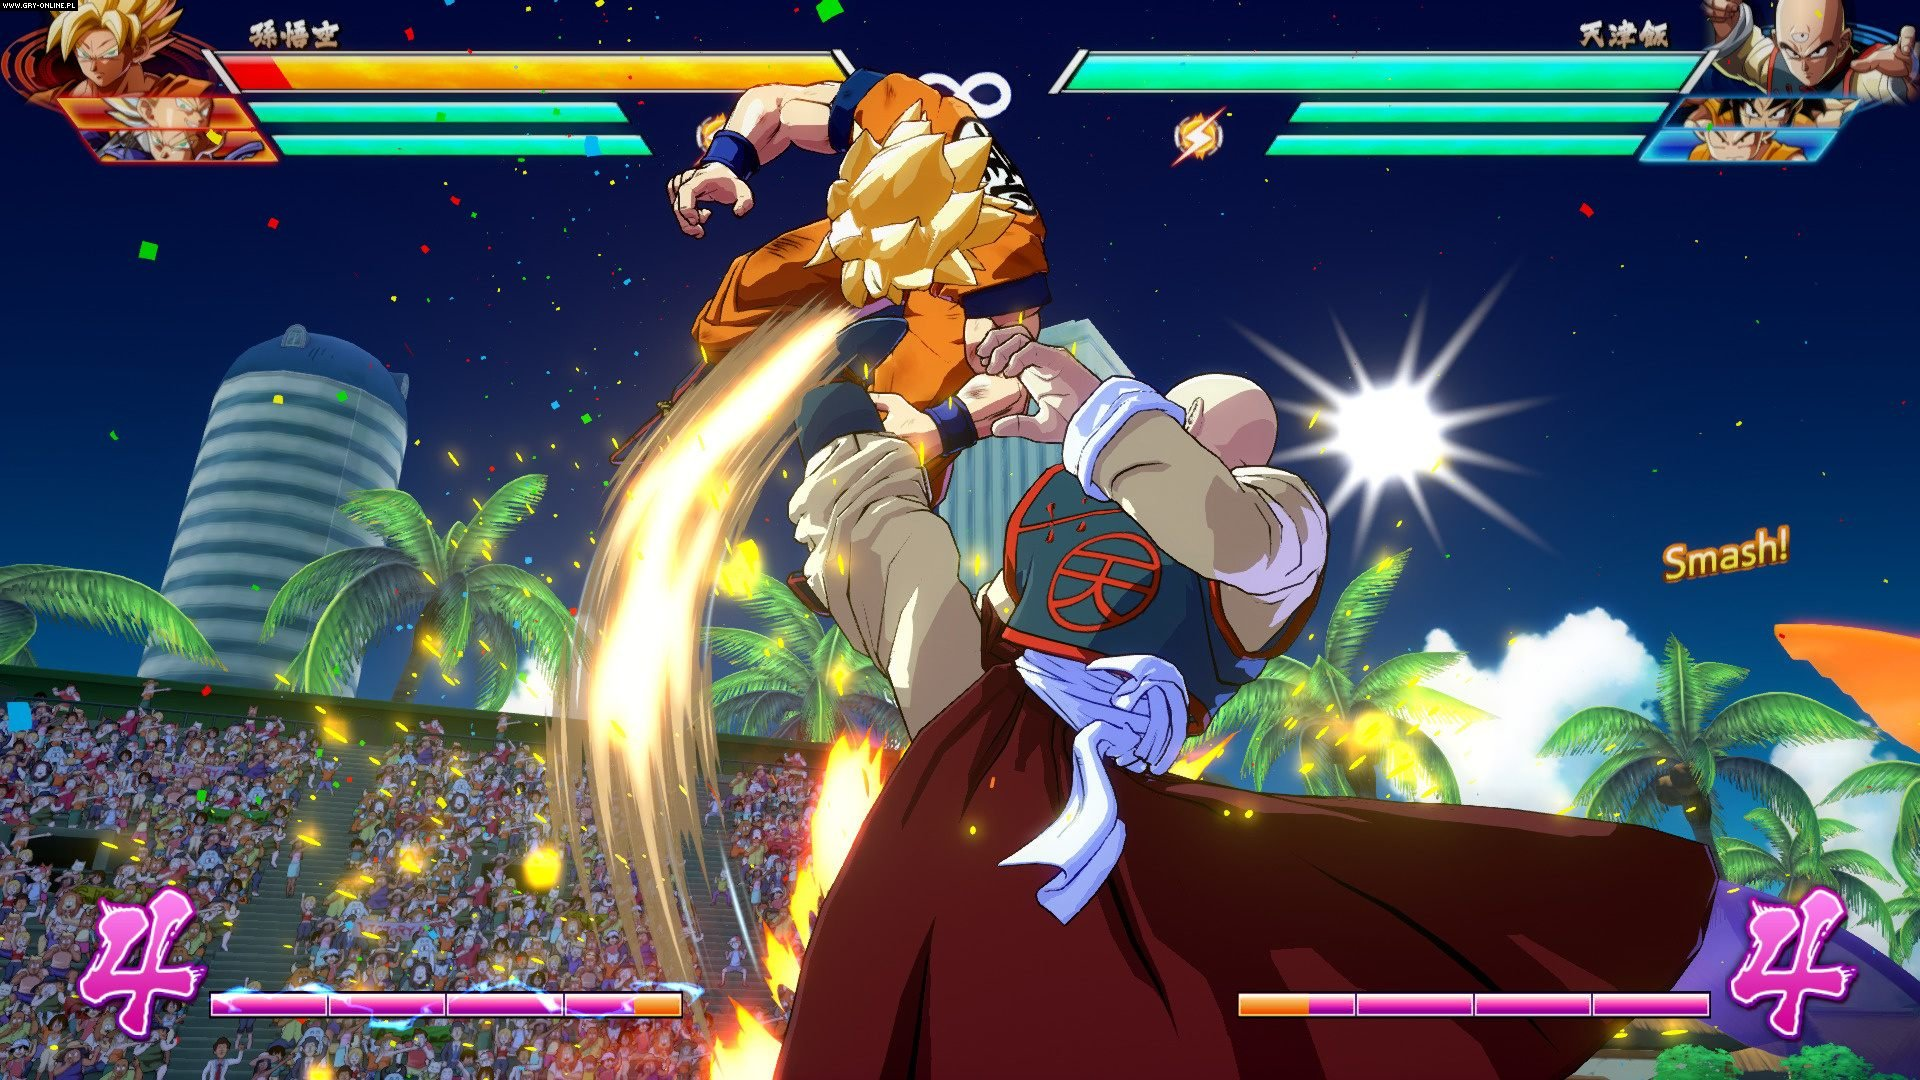 Dragon Ball FighterZ PC, PS4, XONE, Switch Gry Screen 196/230, Arc System Works, Bandai Namco Entertainment